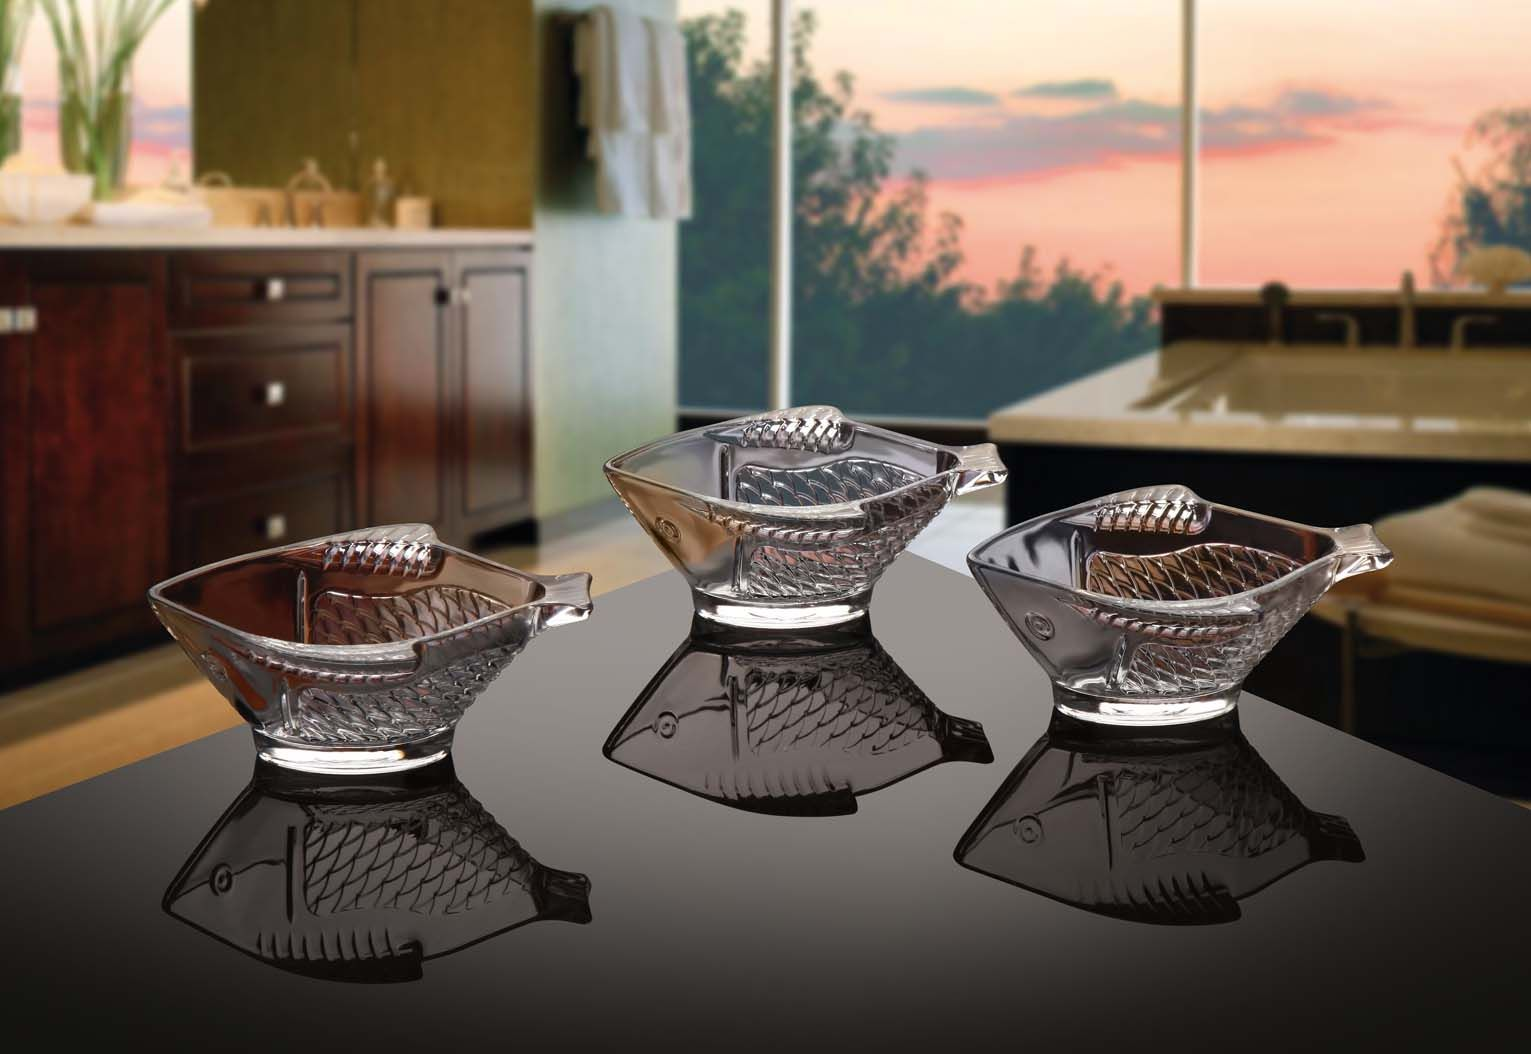 Image Result For Zangan Glass Dishes Glass Dishes Glassware Dishes